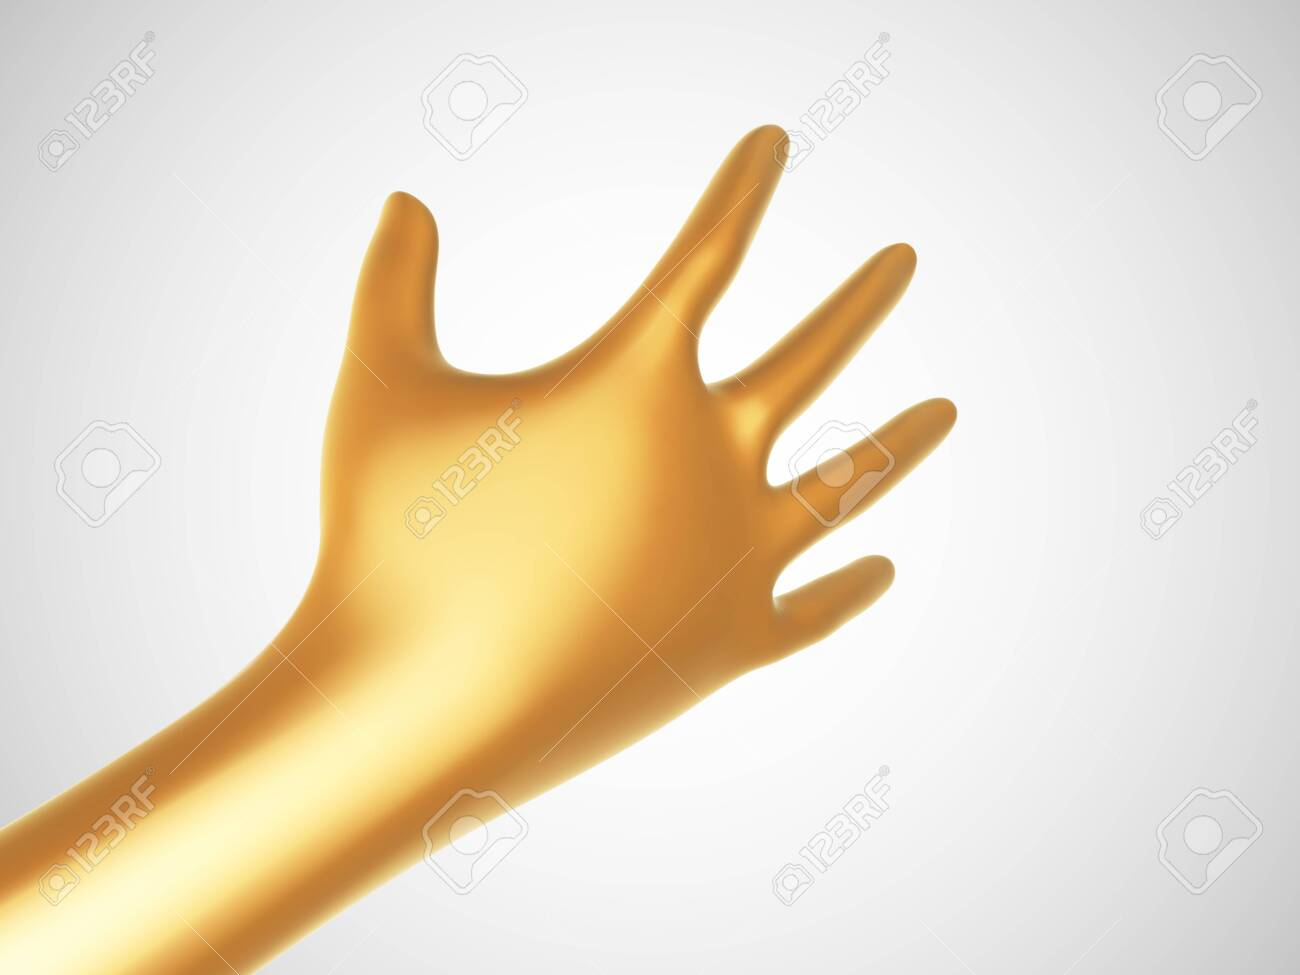 3D golden hand offering for handshake on white background. Concept of financial support, teamwork and business partnership. Vector illustration of shaking human hand made of gold. - 144188814